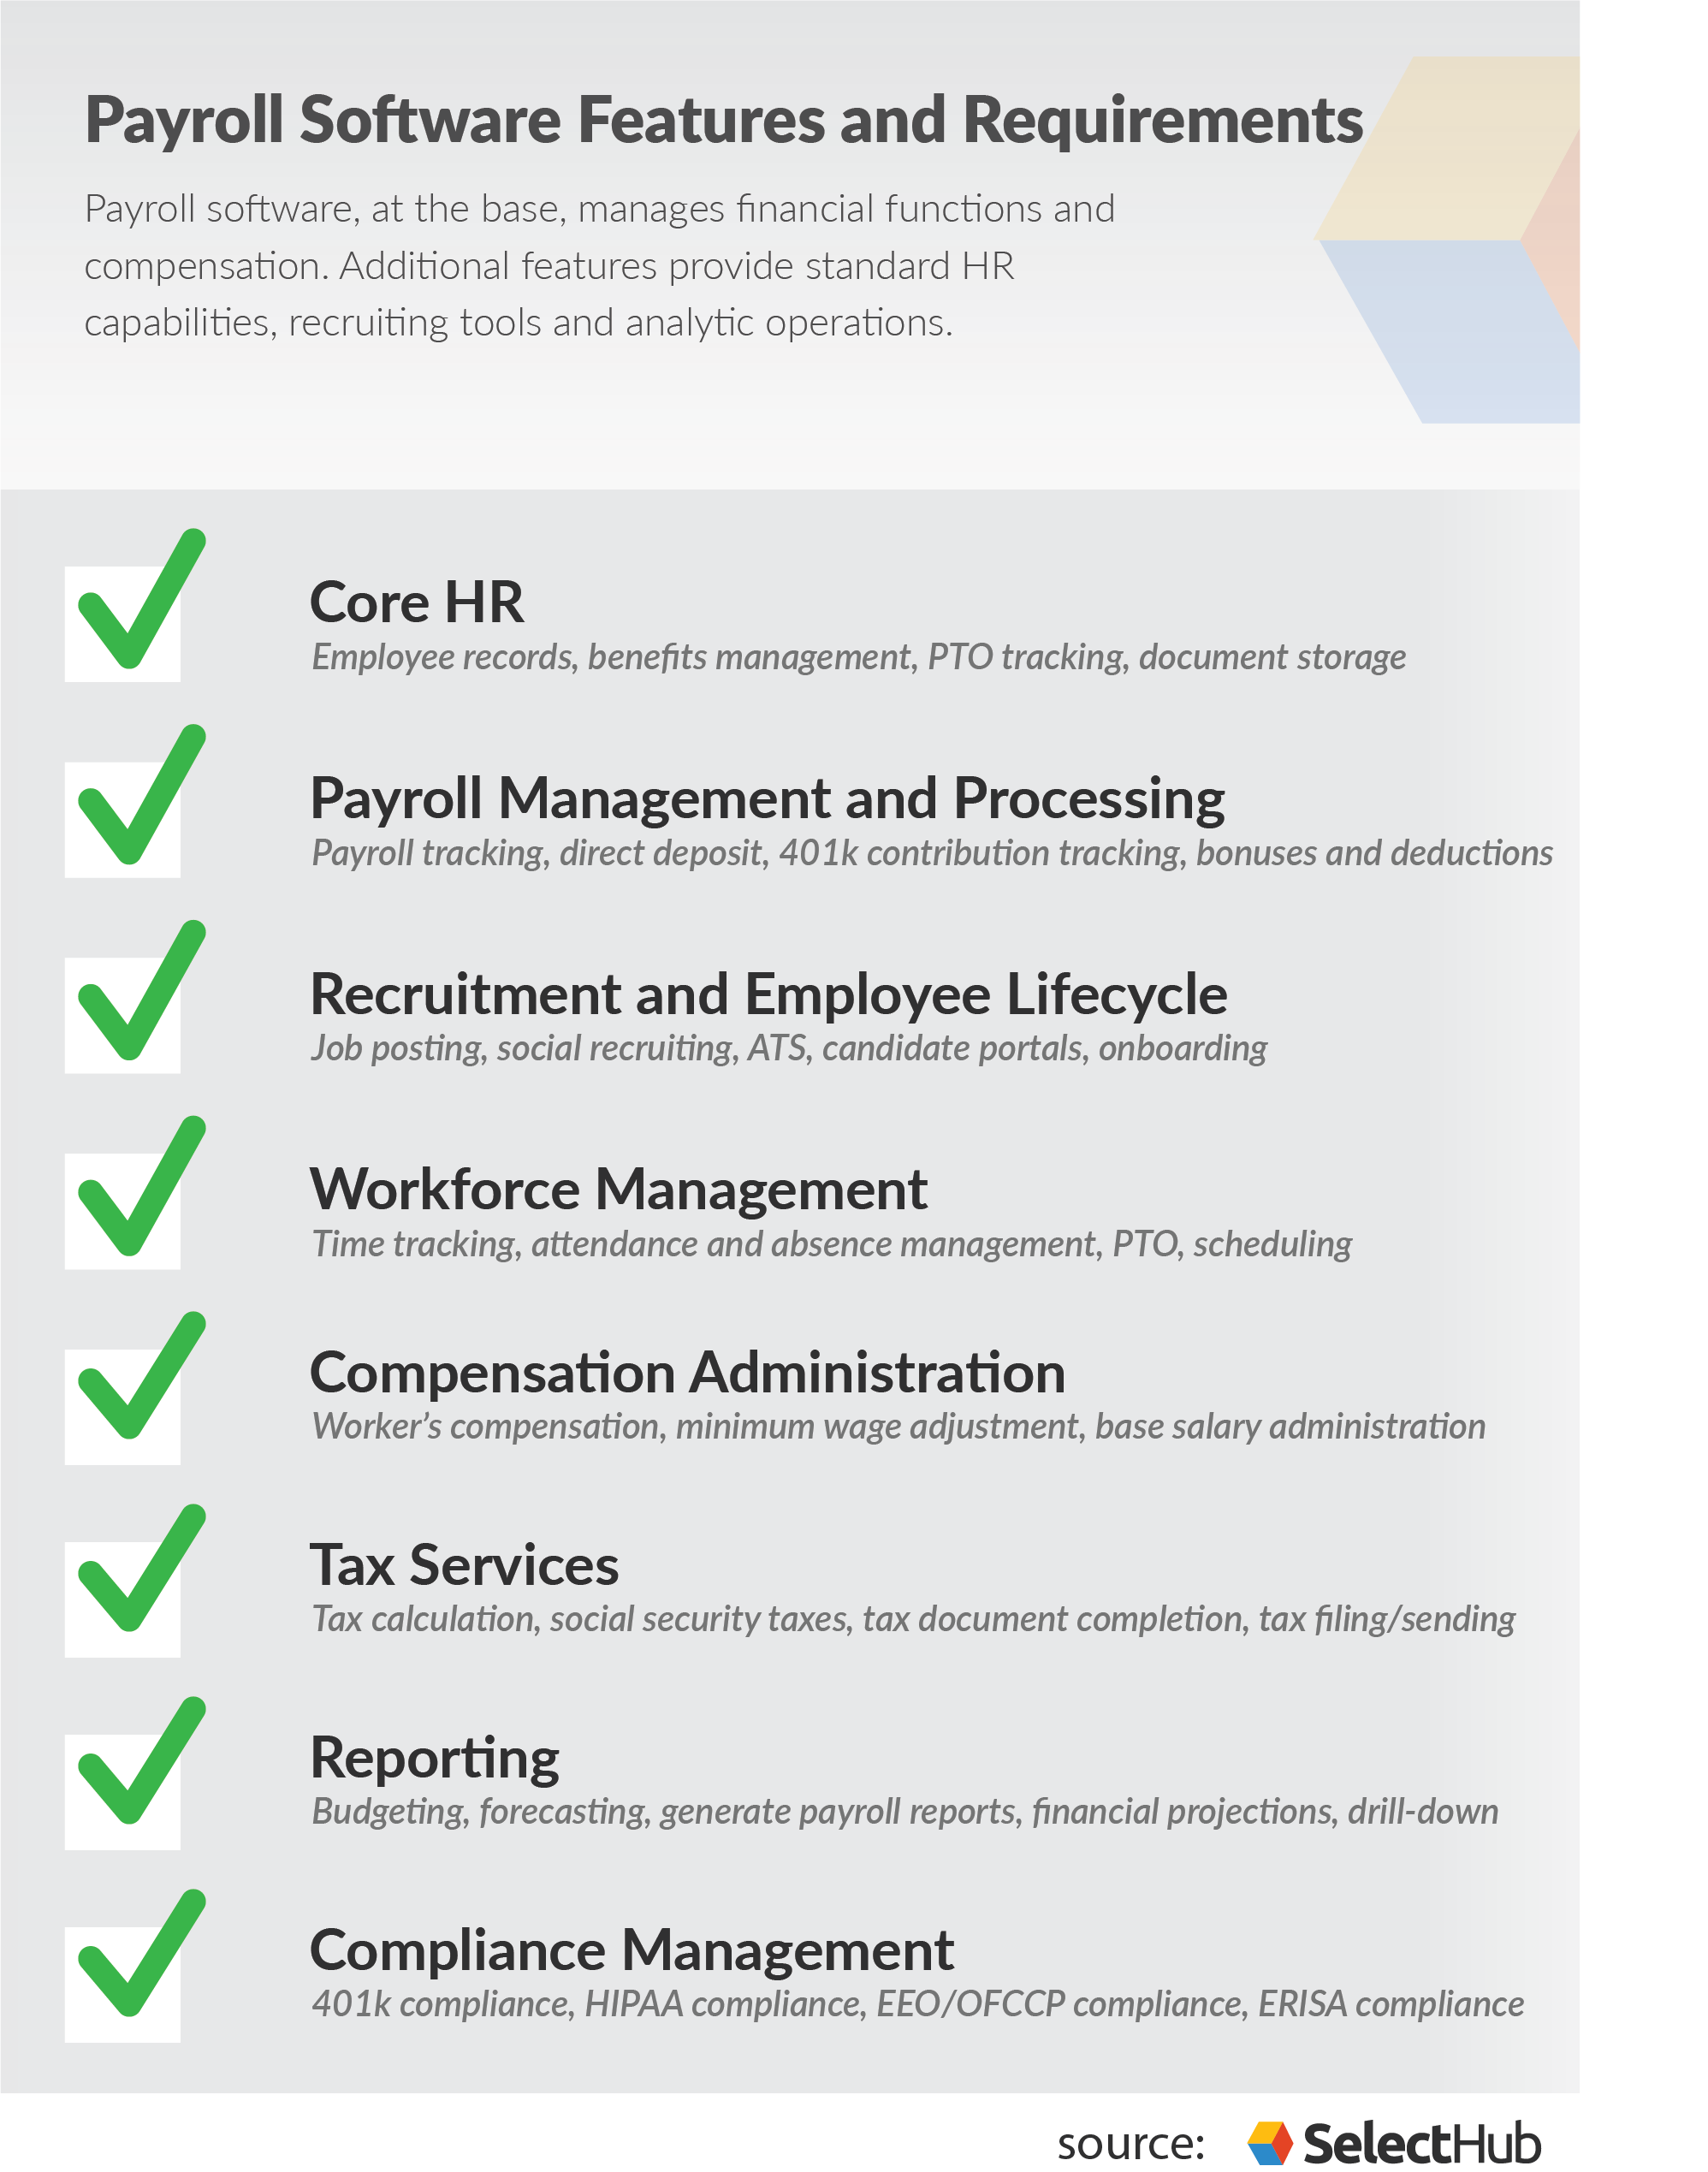 Payroll Software Requirements Checklist